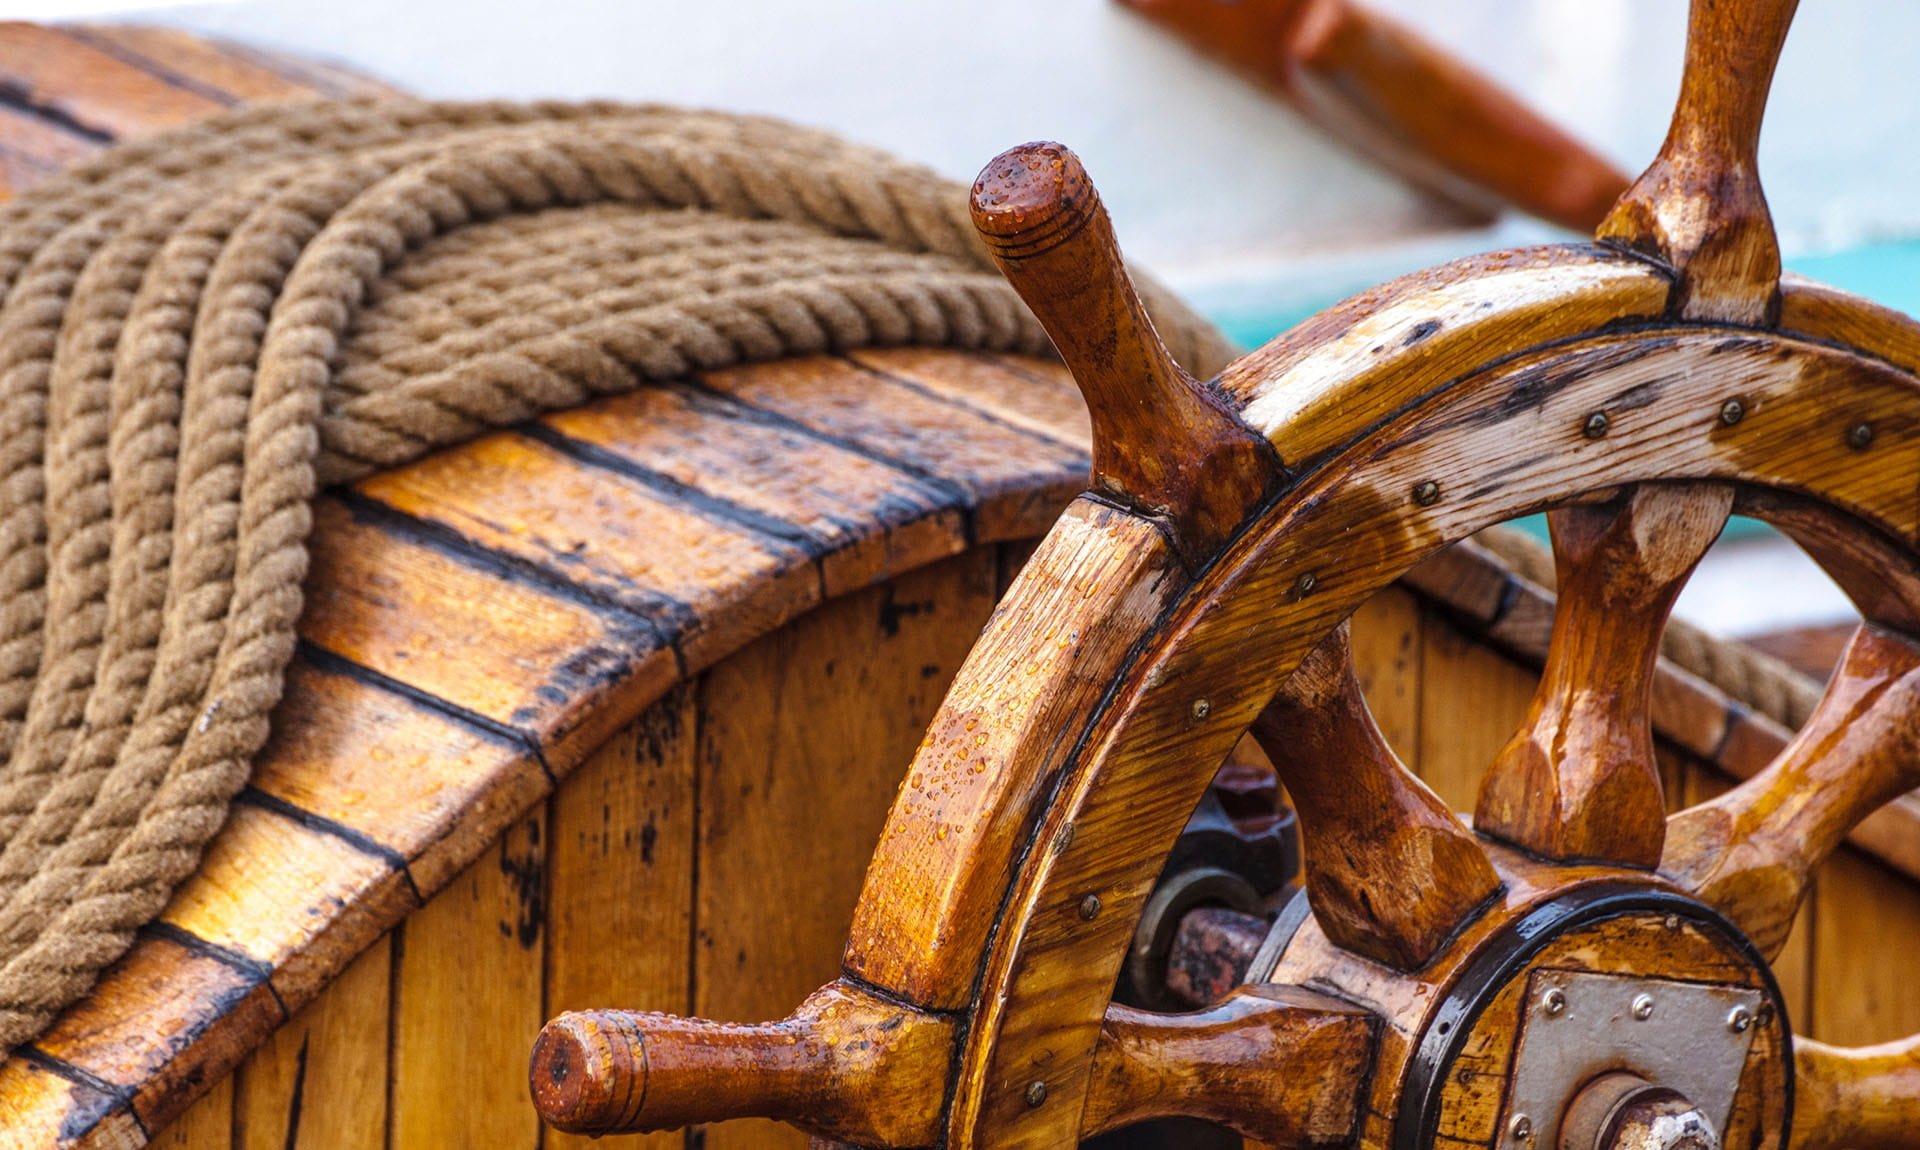 Boat Wheel and Rope